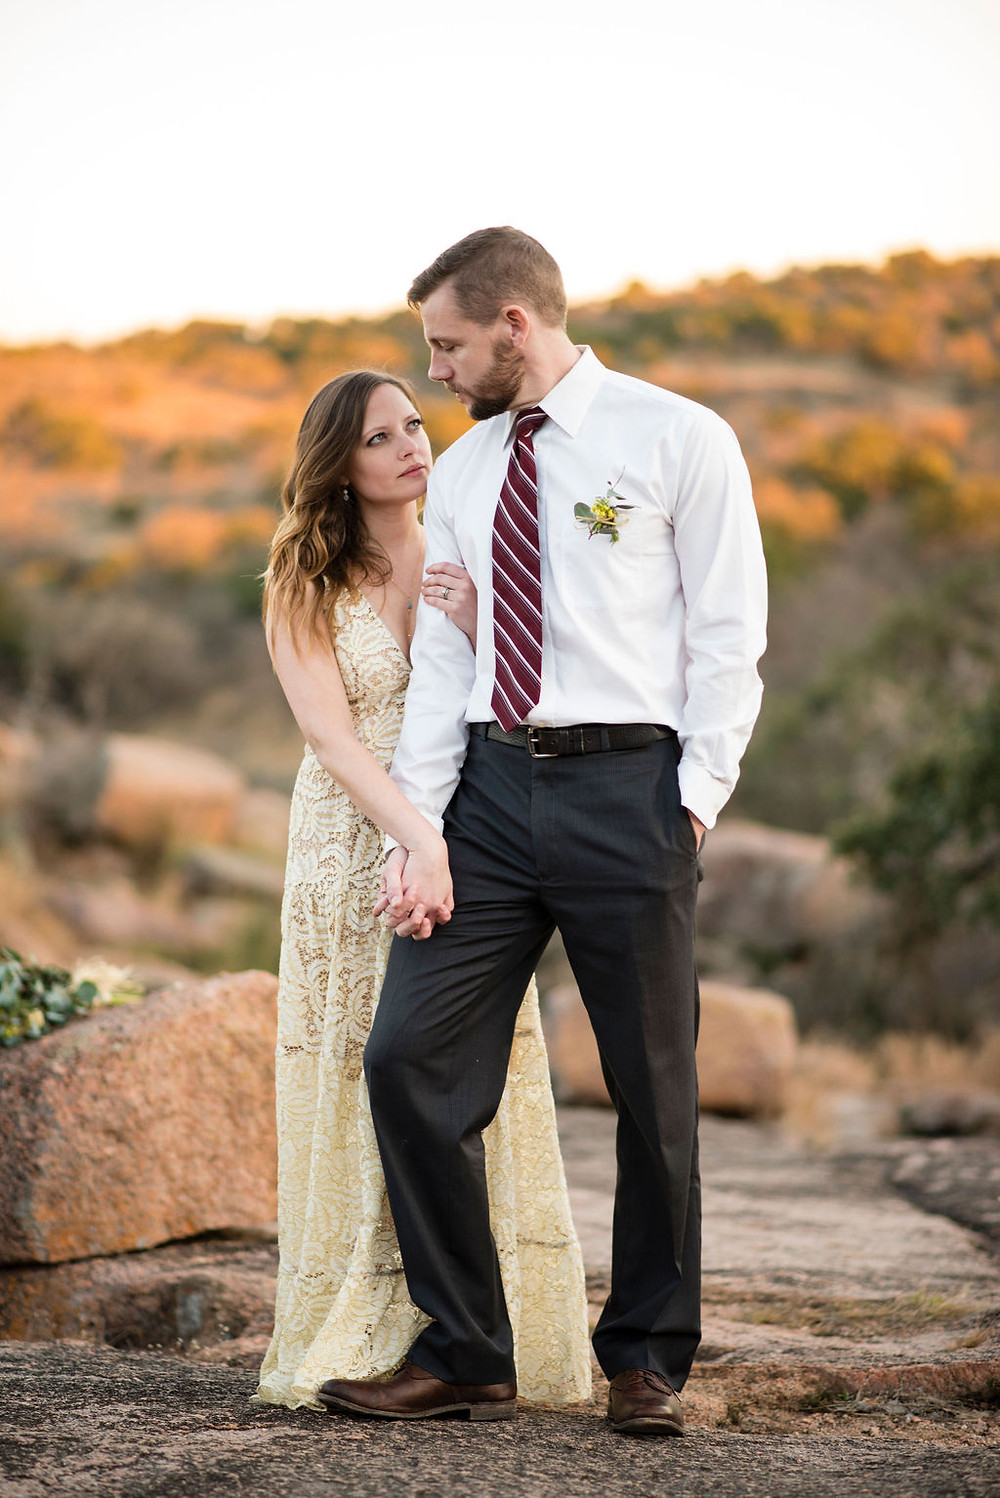 newlyweds pose for photo during enchanted rock elopement. Groom is standing slightly in front of bride with one foot raised. The bride is holding his hand with one arm and the other is wrapped around the groom's bicep. They look at each other seriously